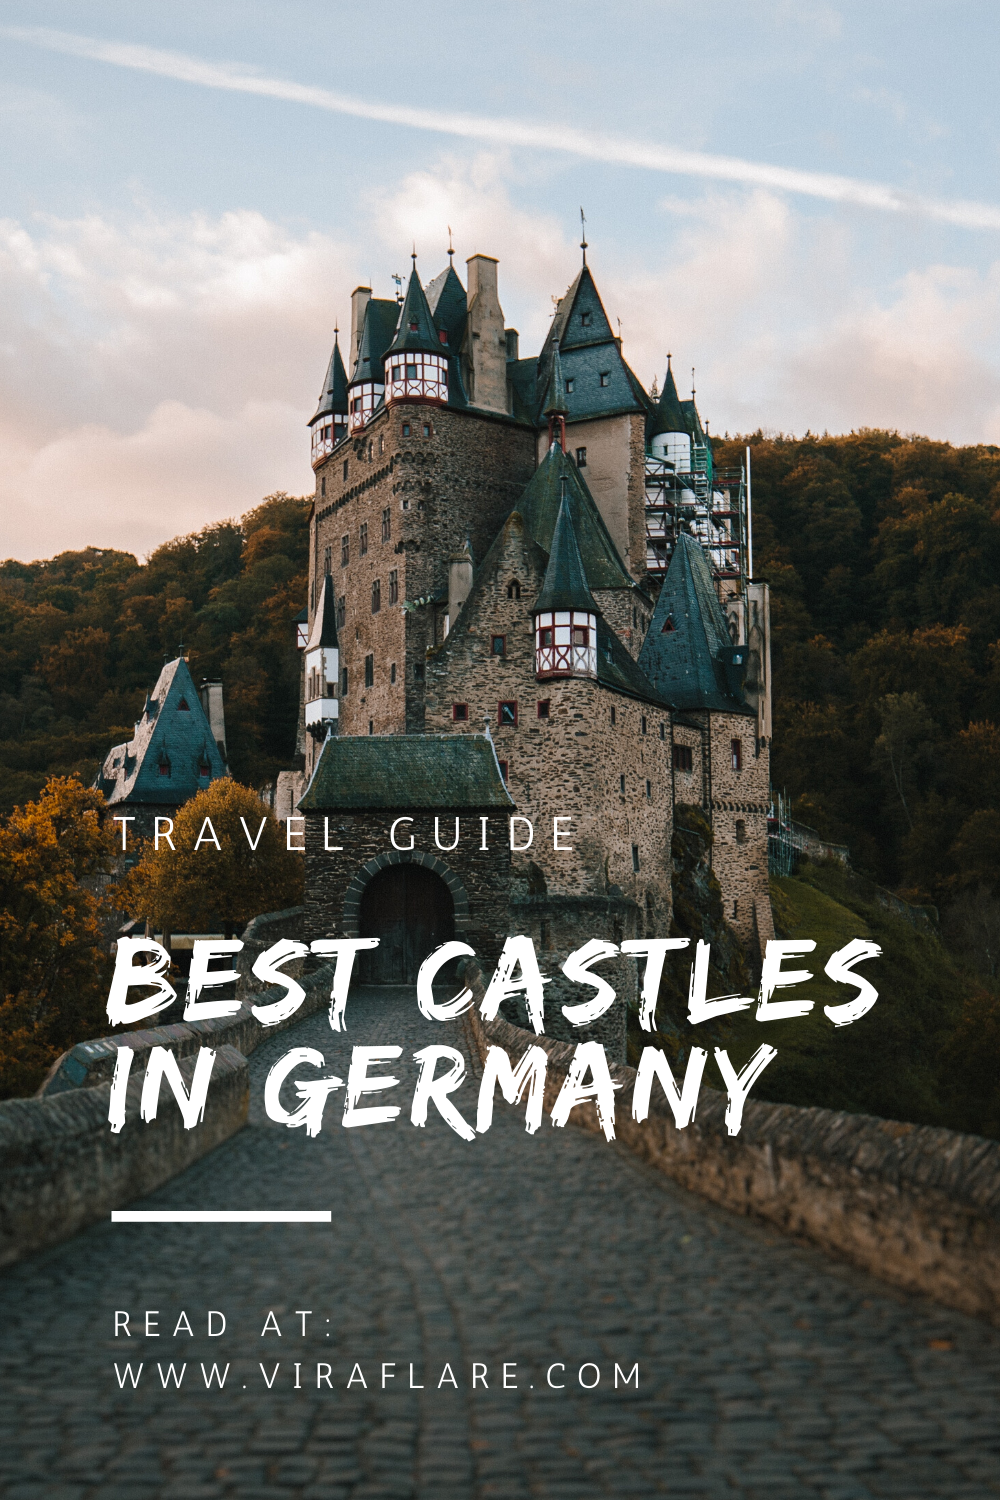 Fairytale Castles in Germany